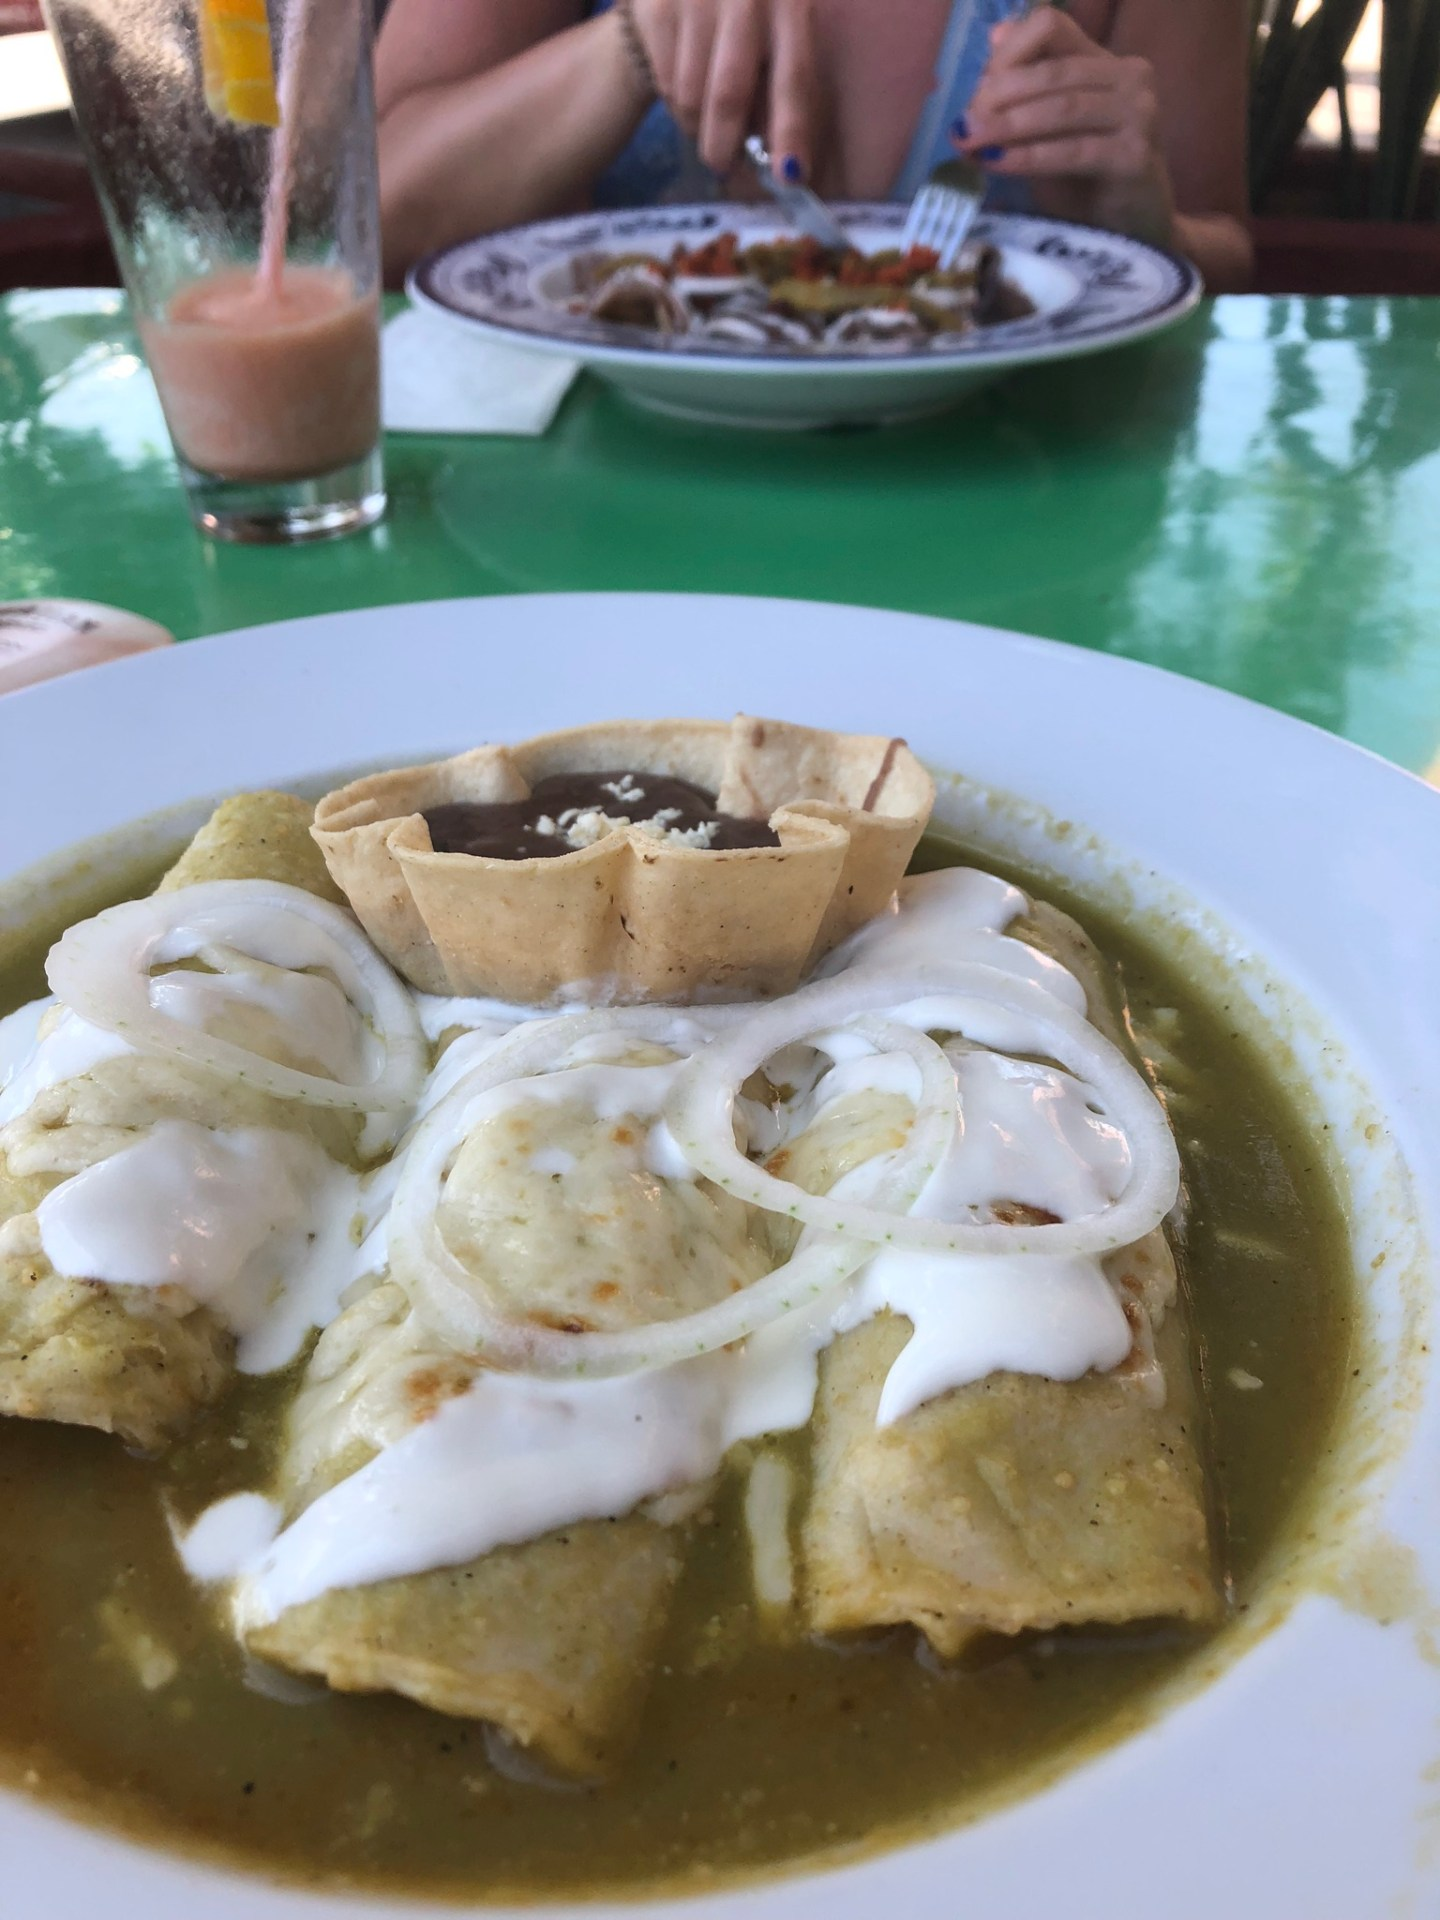 Enchiladas in Cancun, Mexico